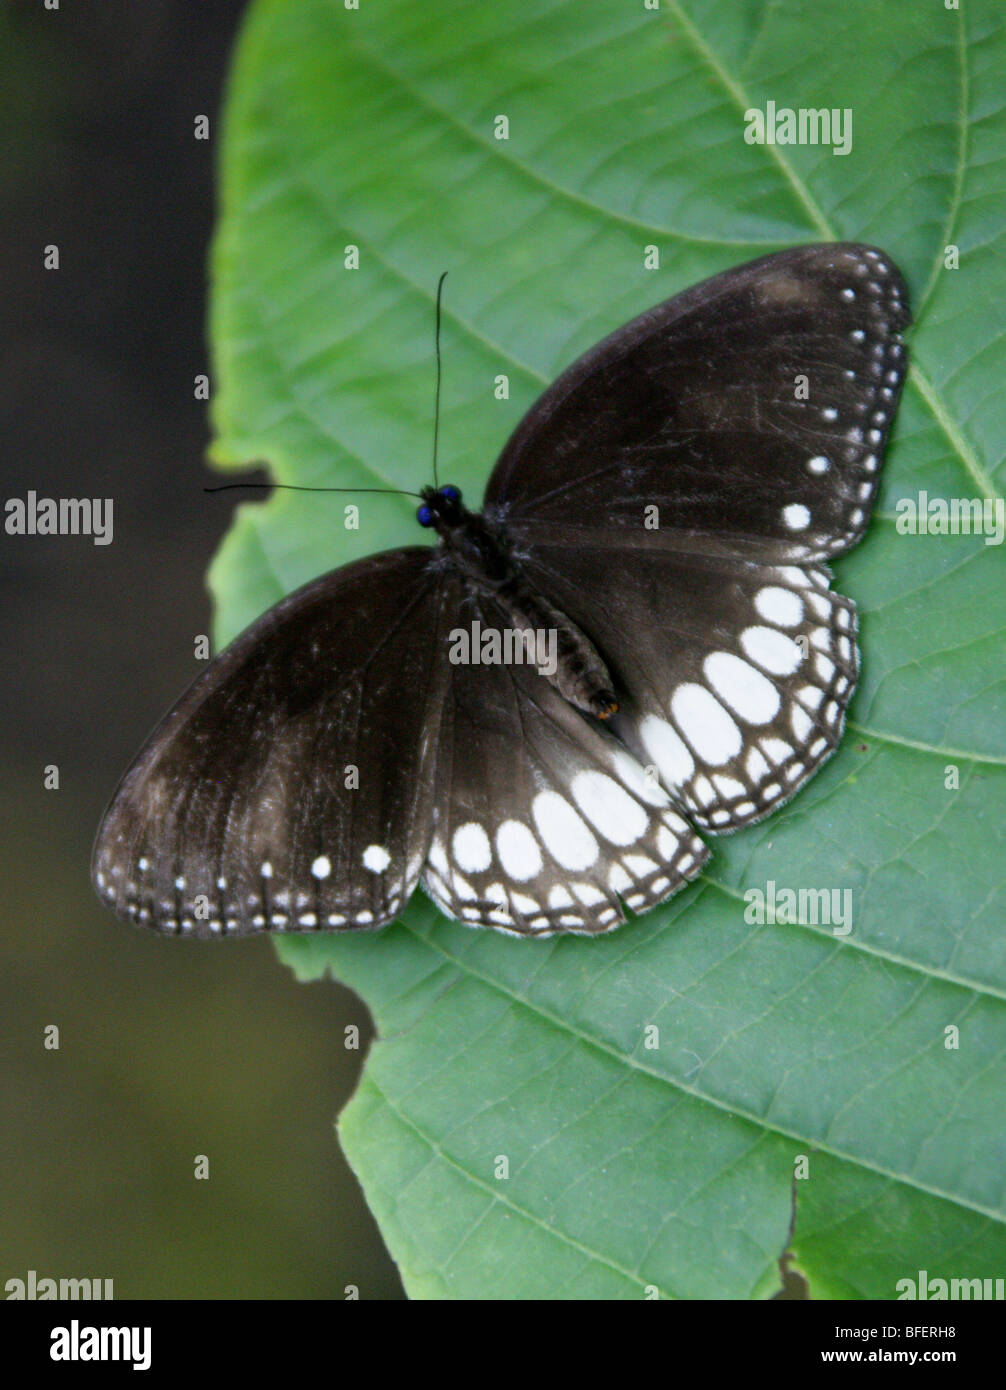 Black and White Nymphalid Butterfly, Nymphalidae. - Stock Image